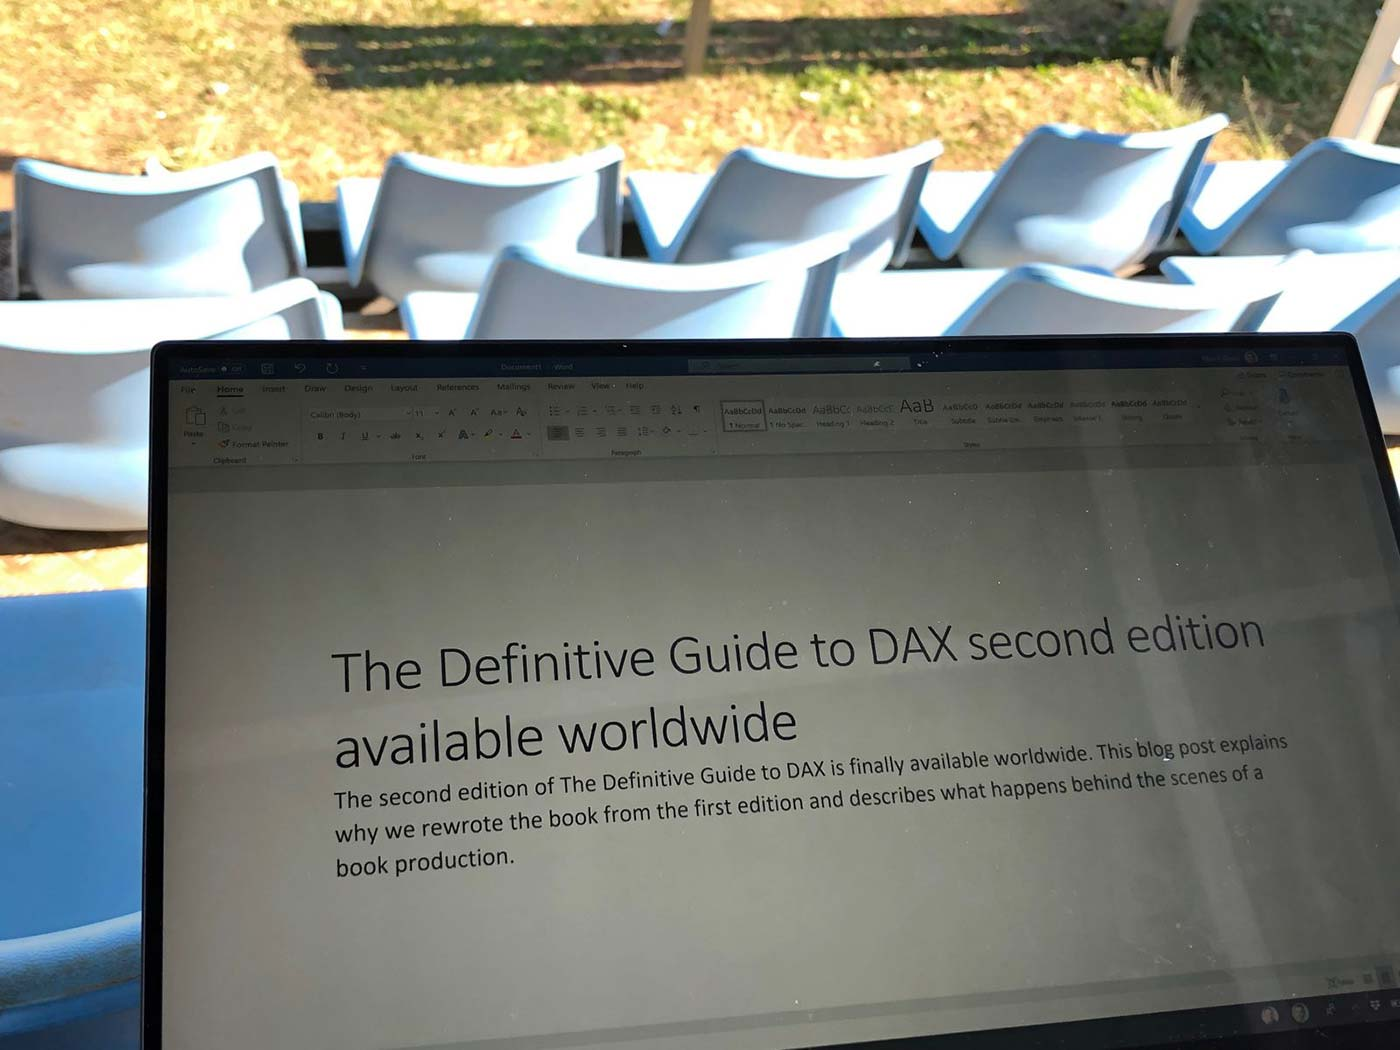 The Definitive Guide to DAX second edition now available